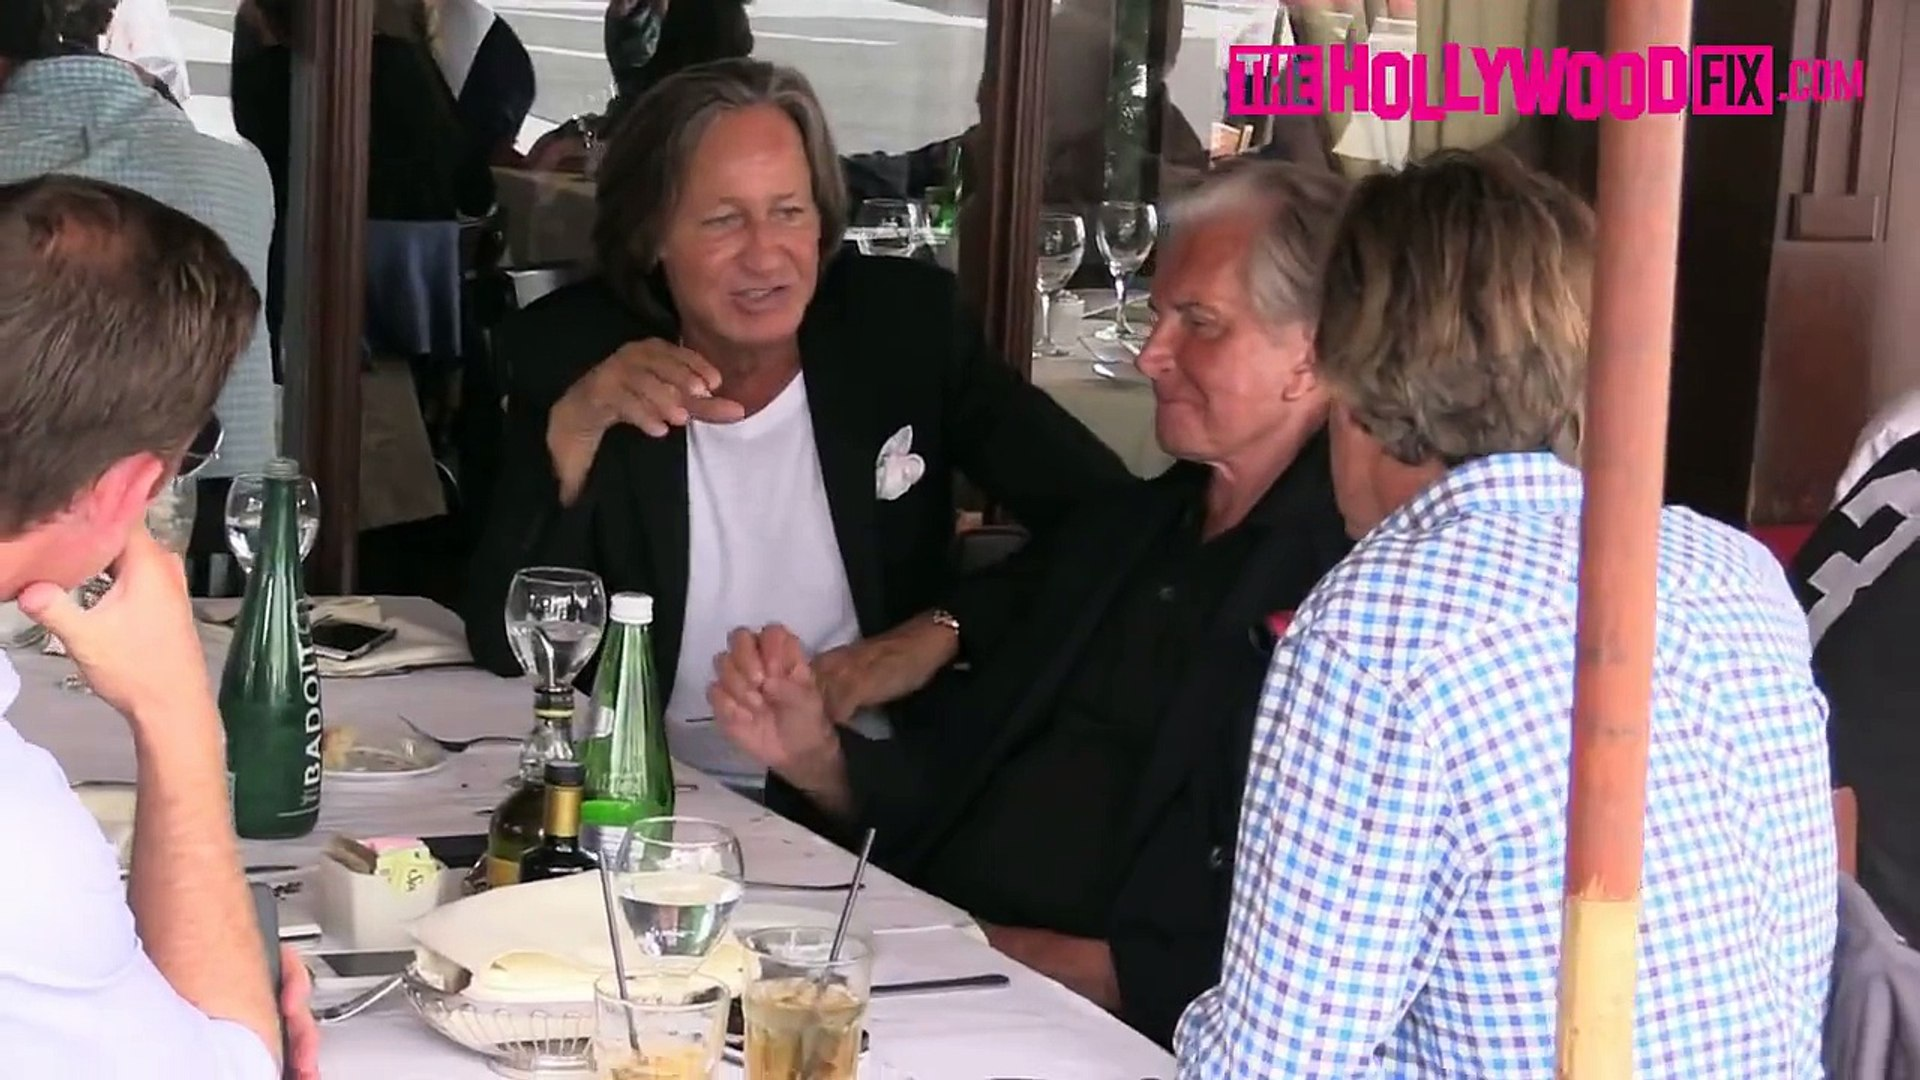 Mohamed Hadid, Eric Benet & George Hamilton Have Lunch At Il Pastaio 9.15.15